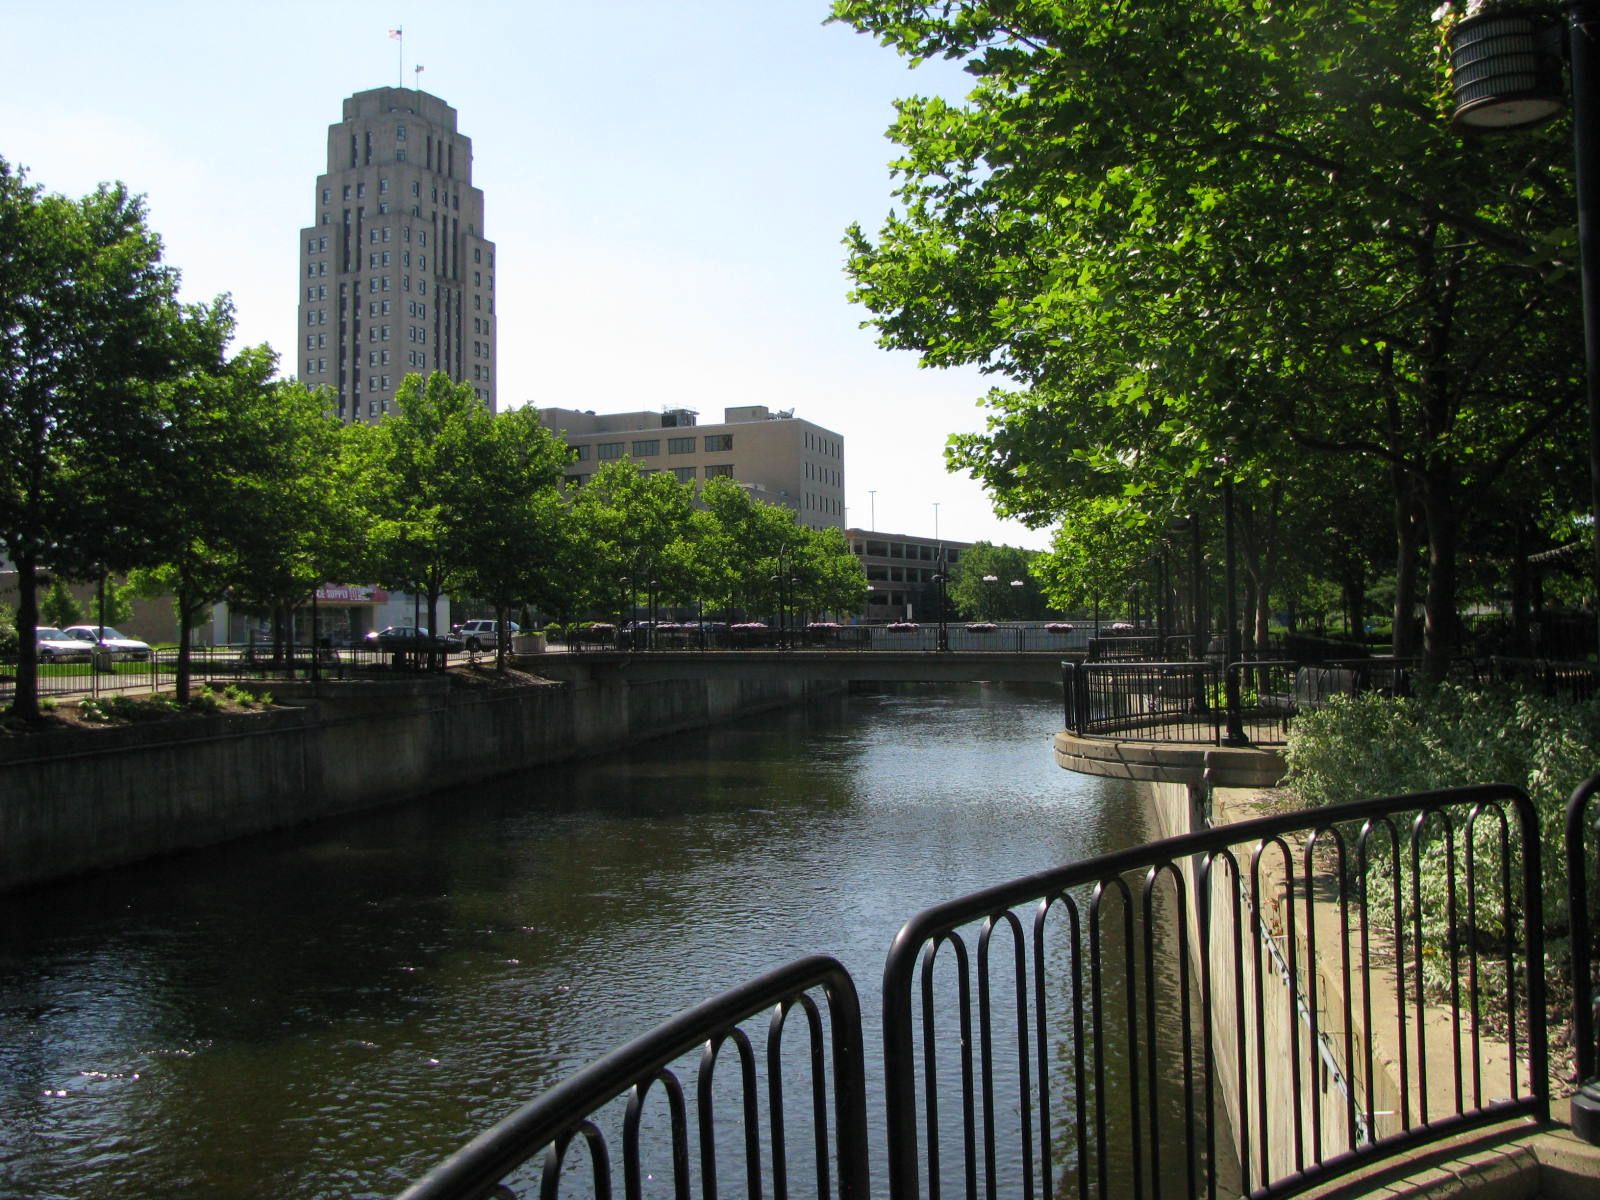 View of the Downtown Section of Battle Creek Michigan